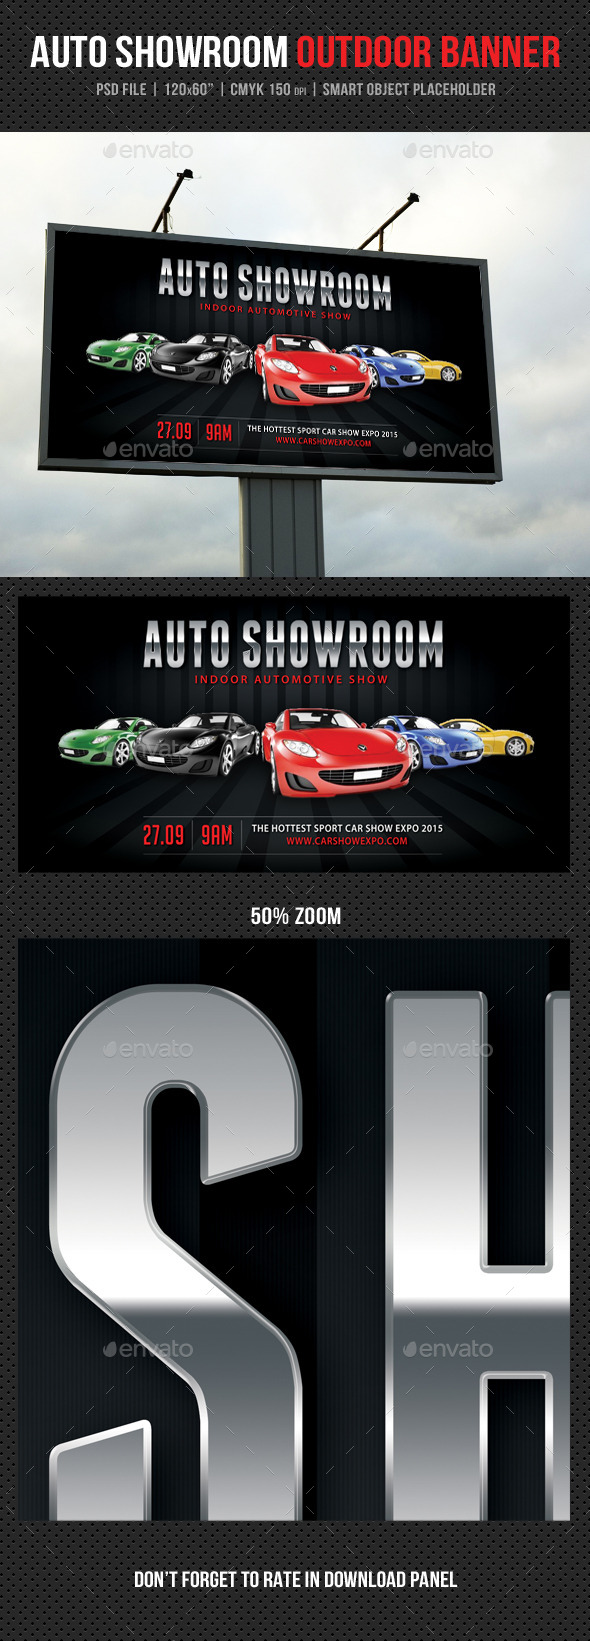 Auto Showroom Outdoor Banner 04